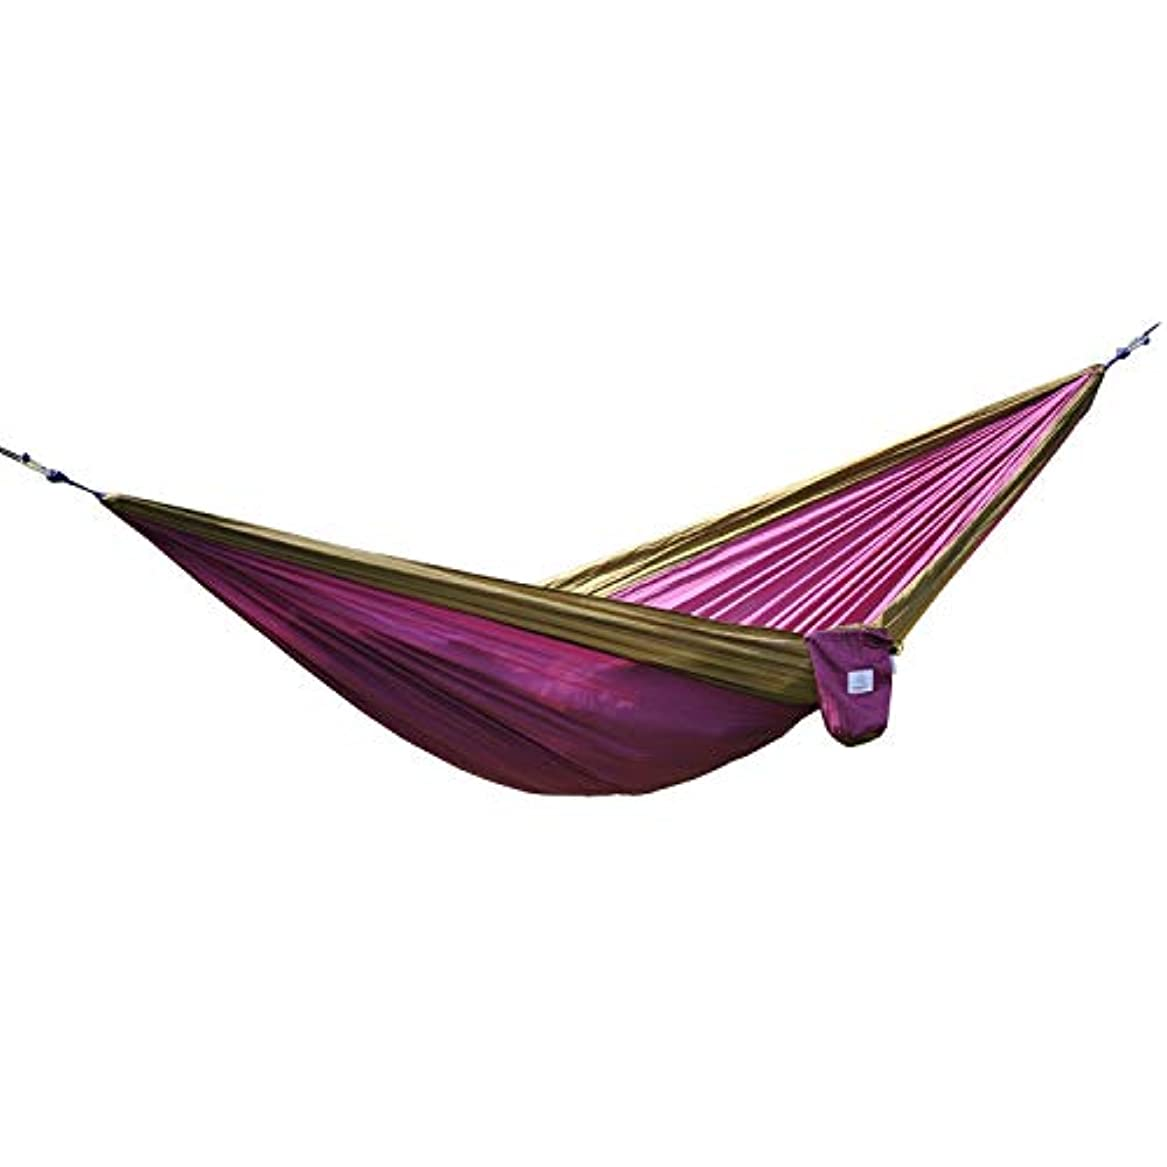 アルバムストレッチ電話に出るOuterEQ Portable Parachute Camping Hammocks Lightweight Nylon Fabric Travel Hammock (Brown/Purple, 295cm x 198cm/Double) [並行輸入品]